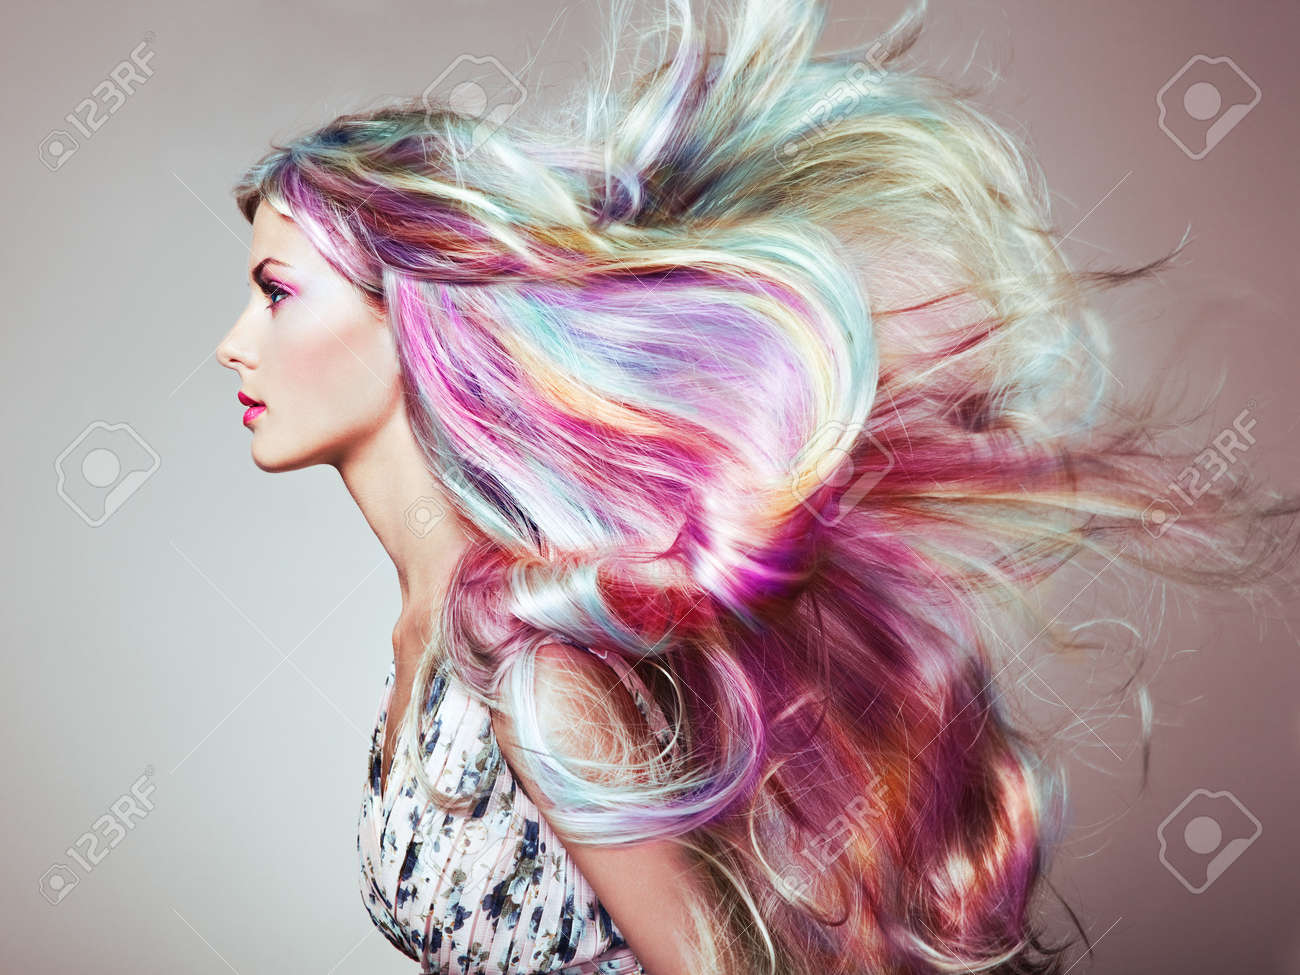 Beauty Fashion Model Girl with Colorful Dyed Hair. Girl with perfect Makeup and Hairstyle. Model with perfect Healthy Dyed Hair. Rainbow Hairstyles - 95717889